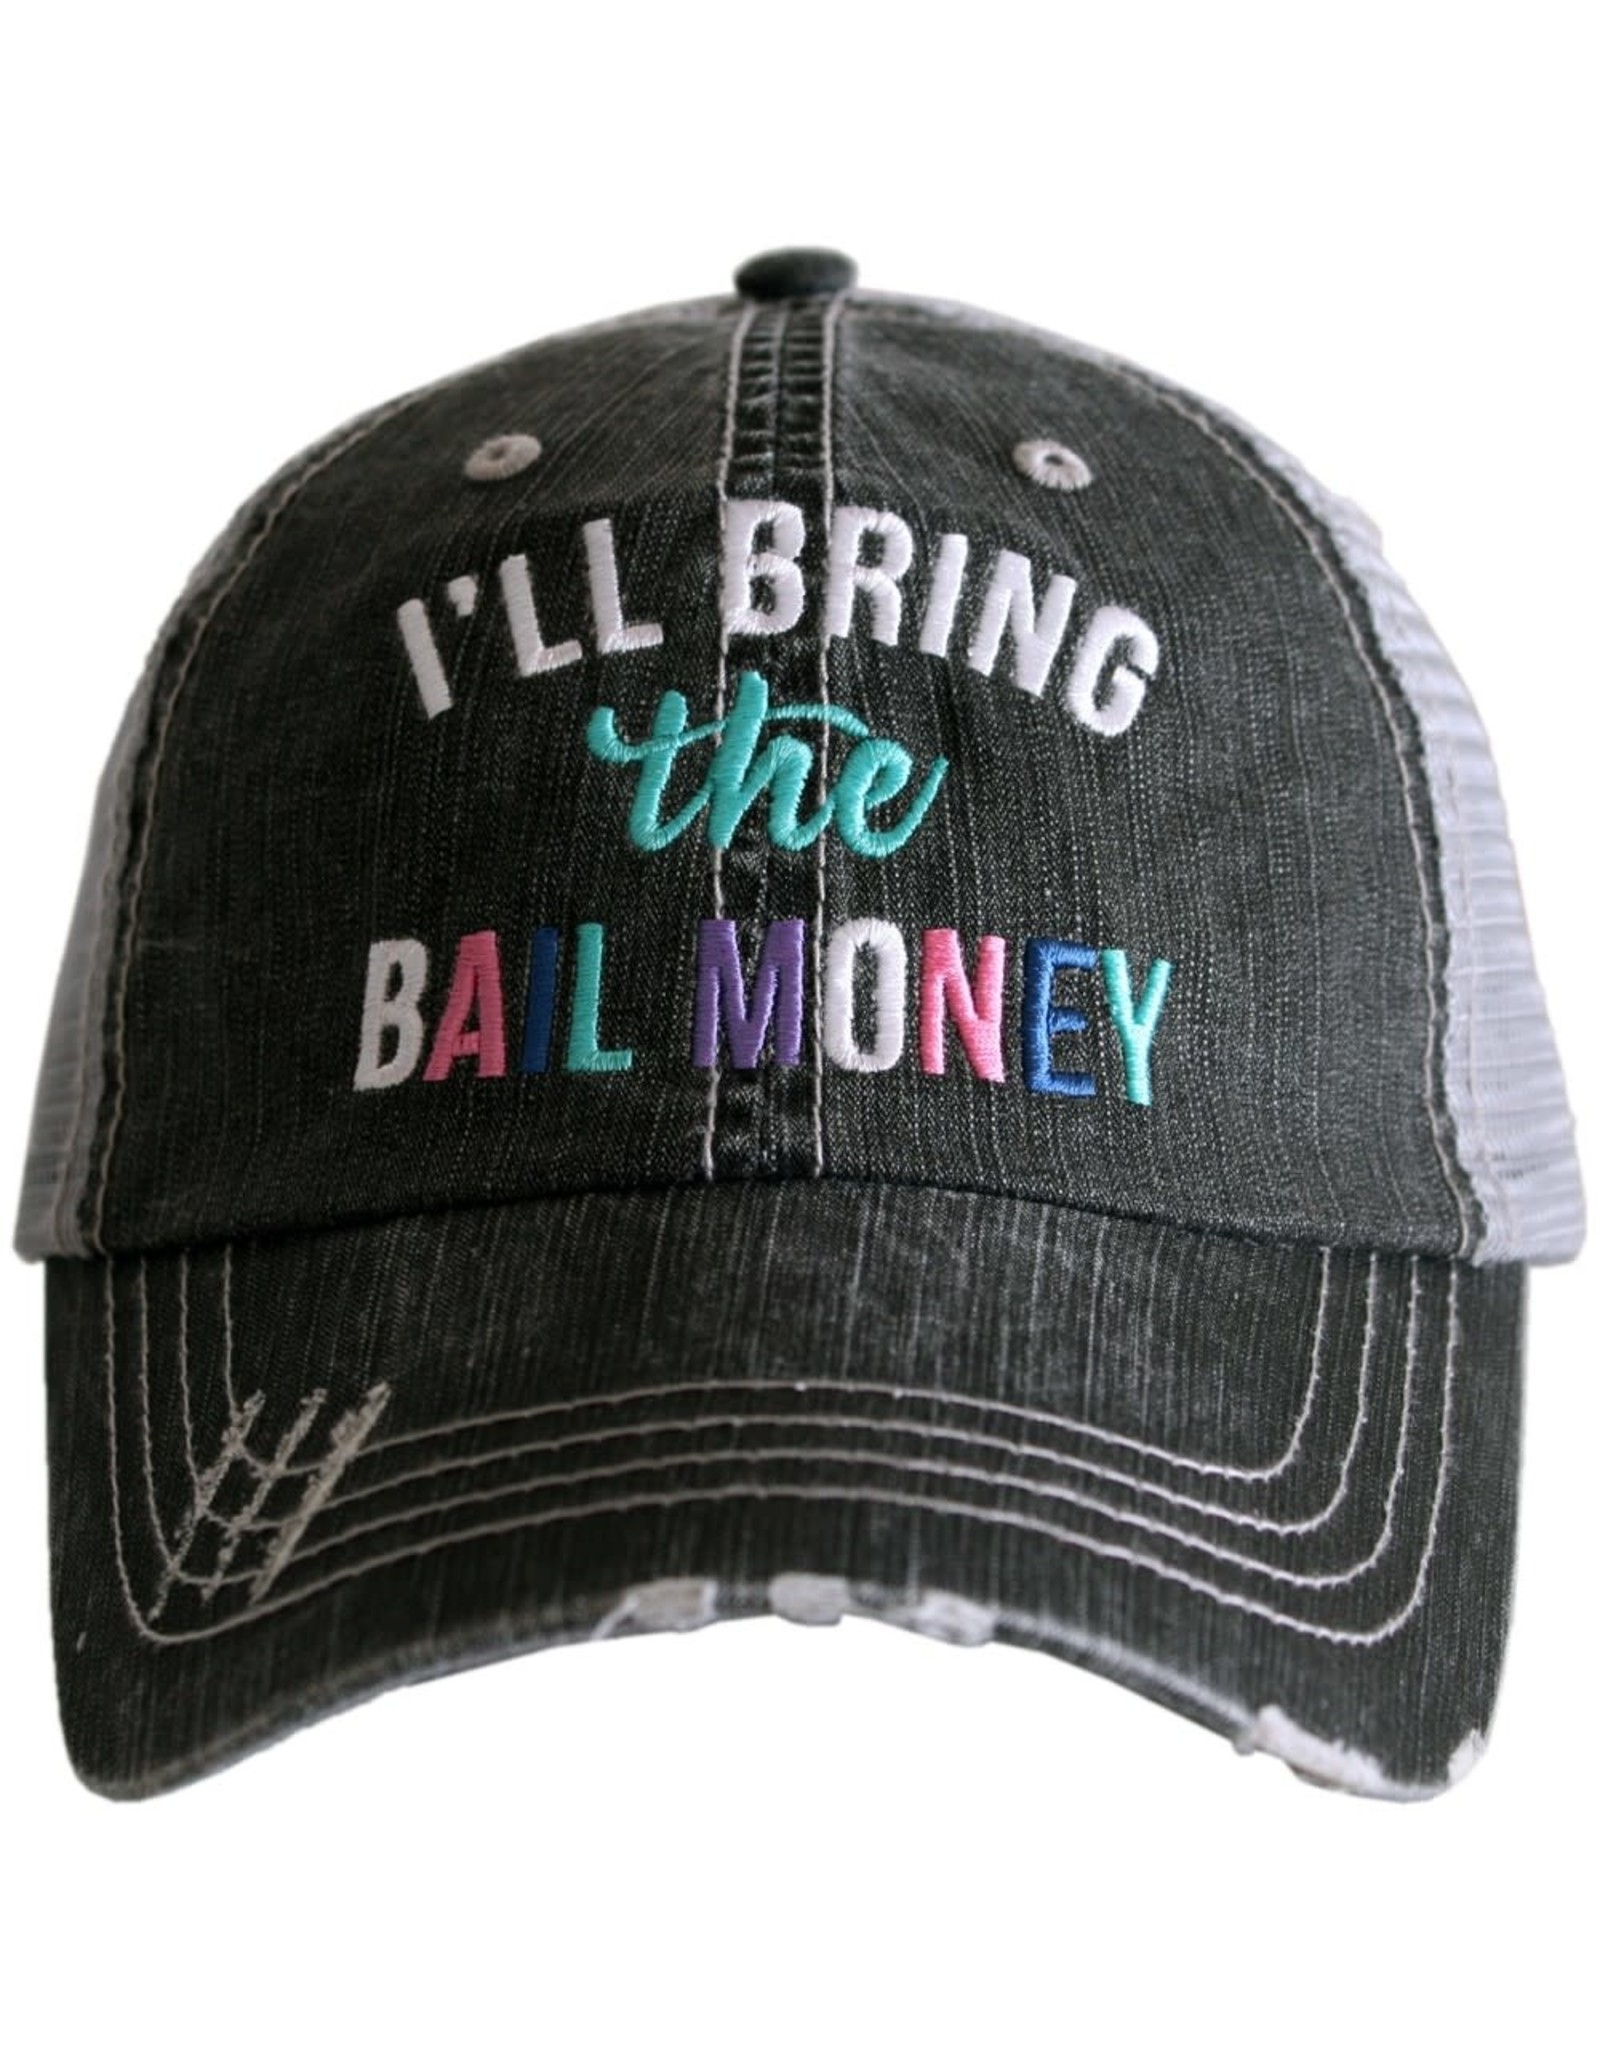 TLC ILL BRING BAIL MONEY TRUCKER HAT